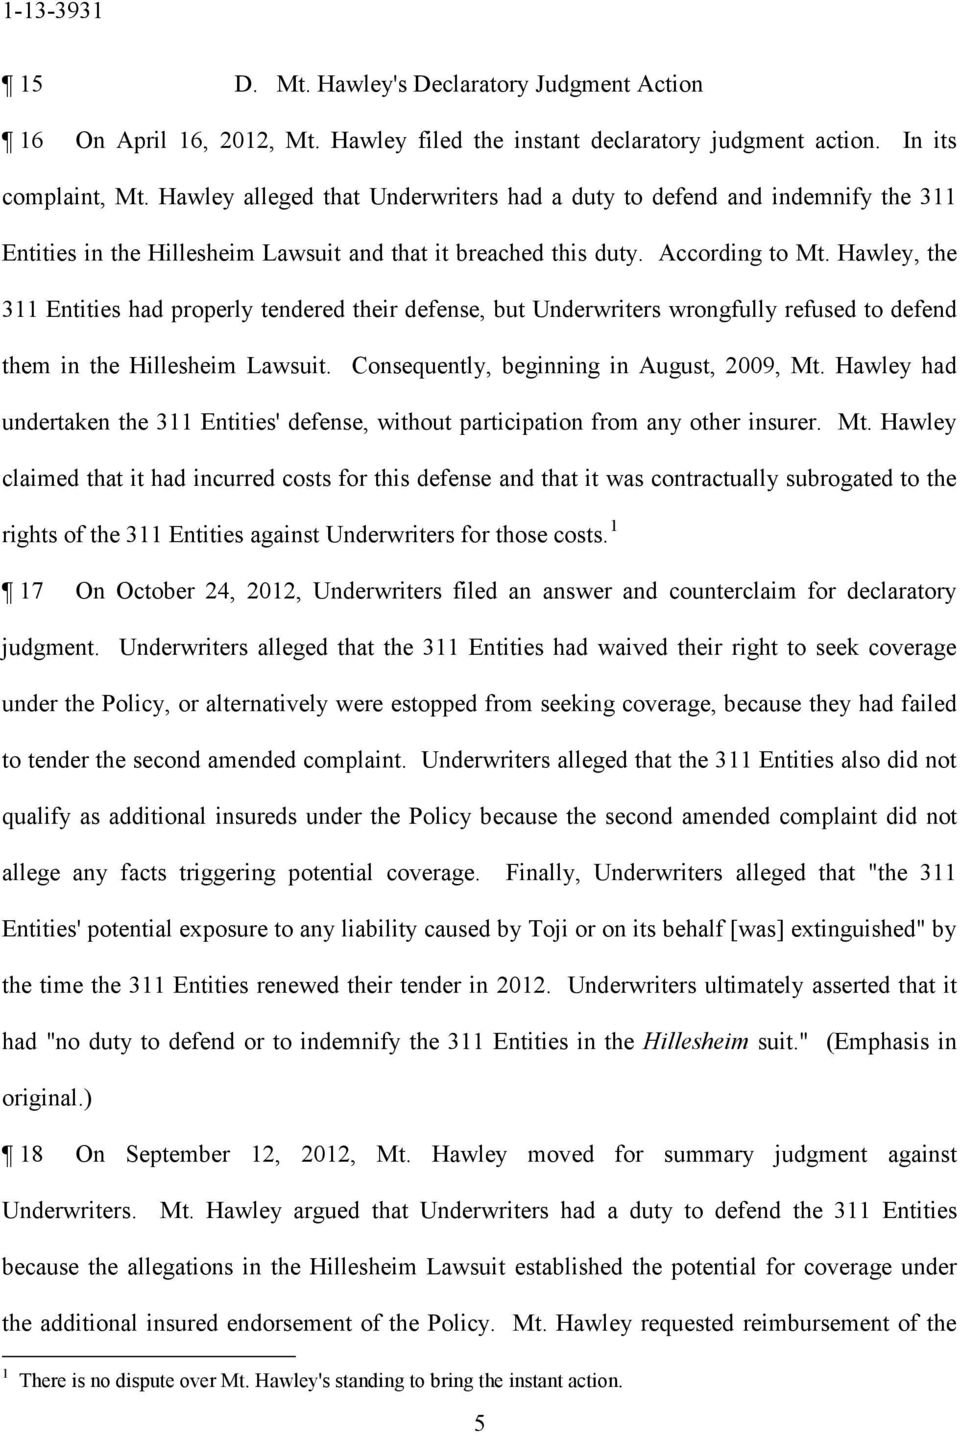 Hawley, the 311 Entities had properly tendered their defense, but Underwriters wrongfully refused to defend them in the Hillesheim Lawsuit. Consequently, beginning in August, 2009, Mt.